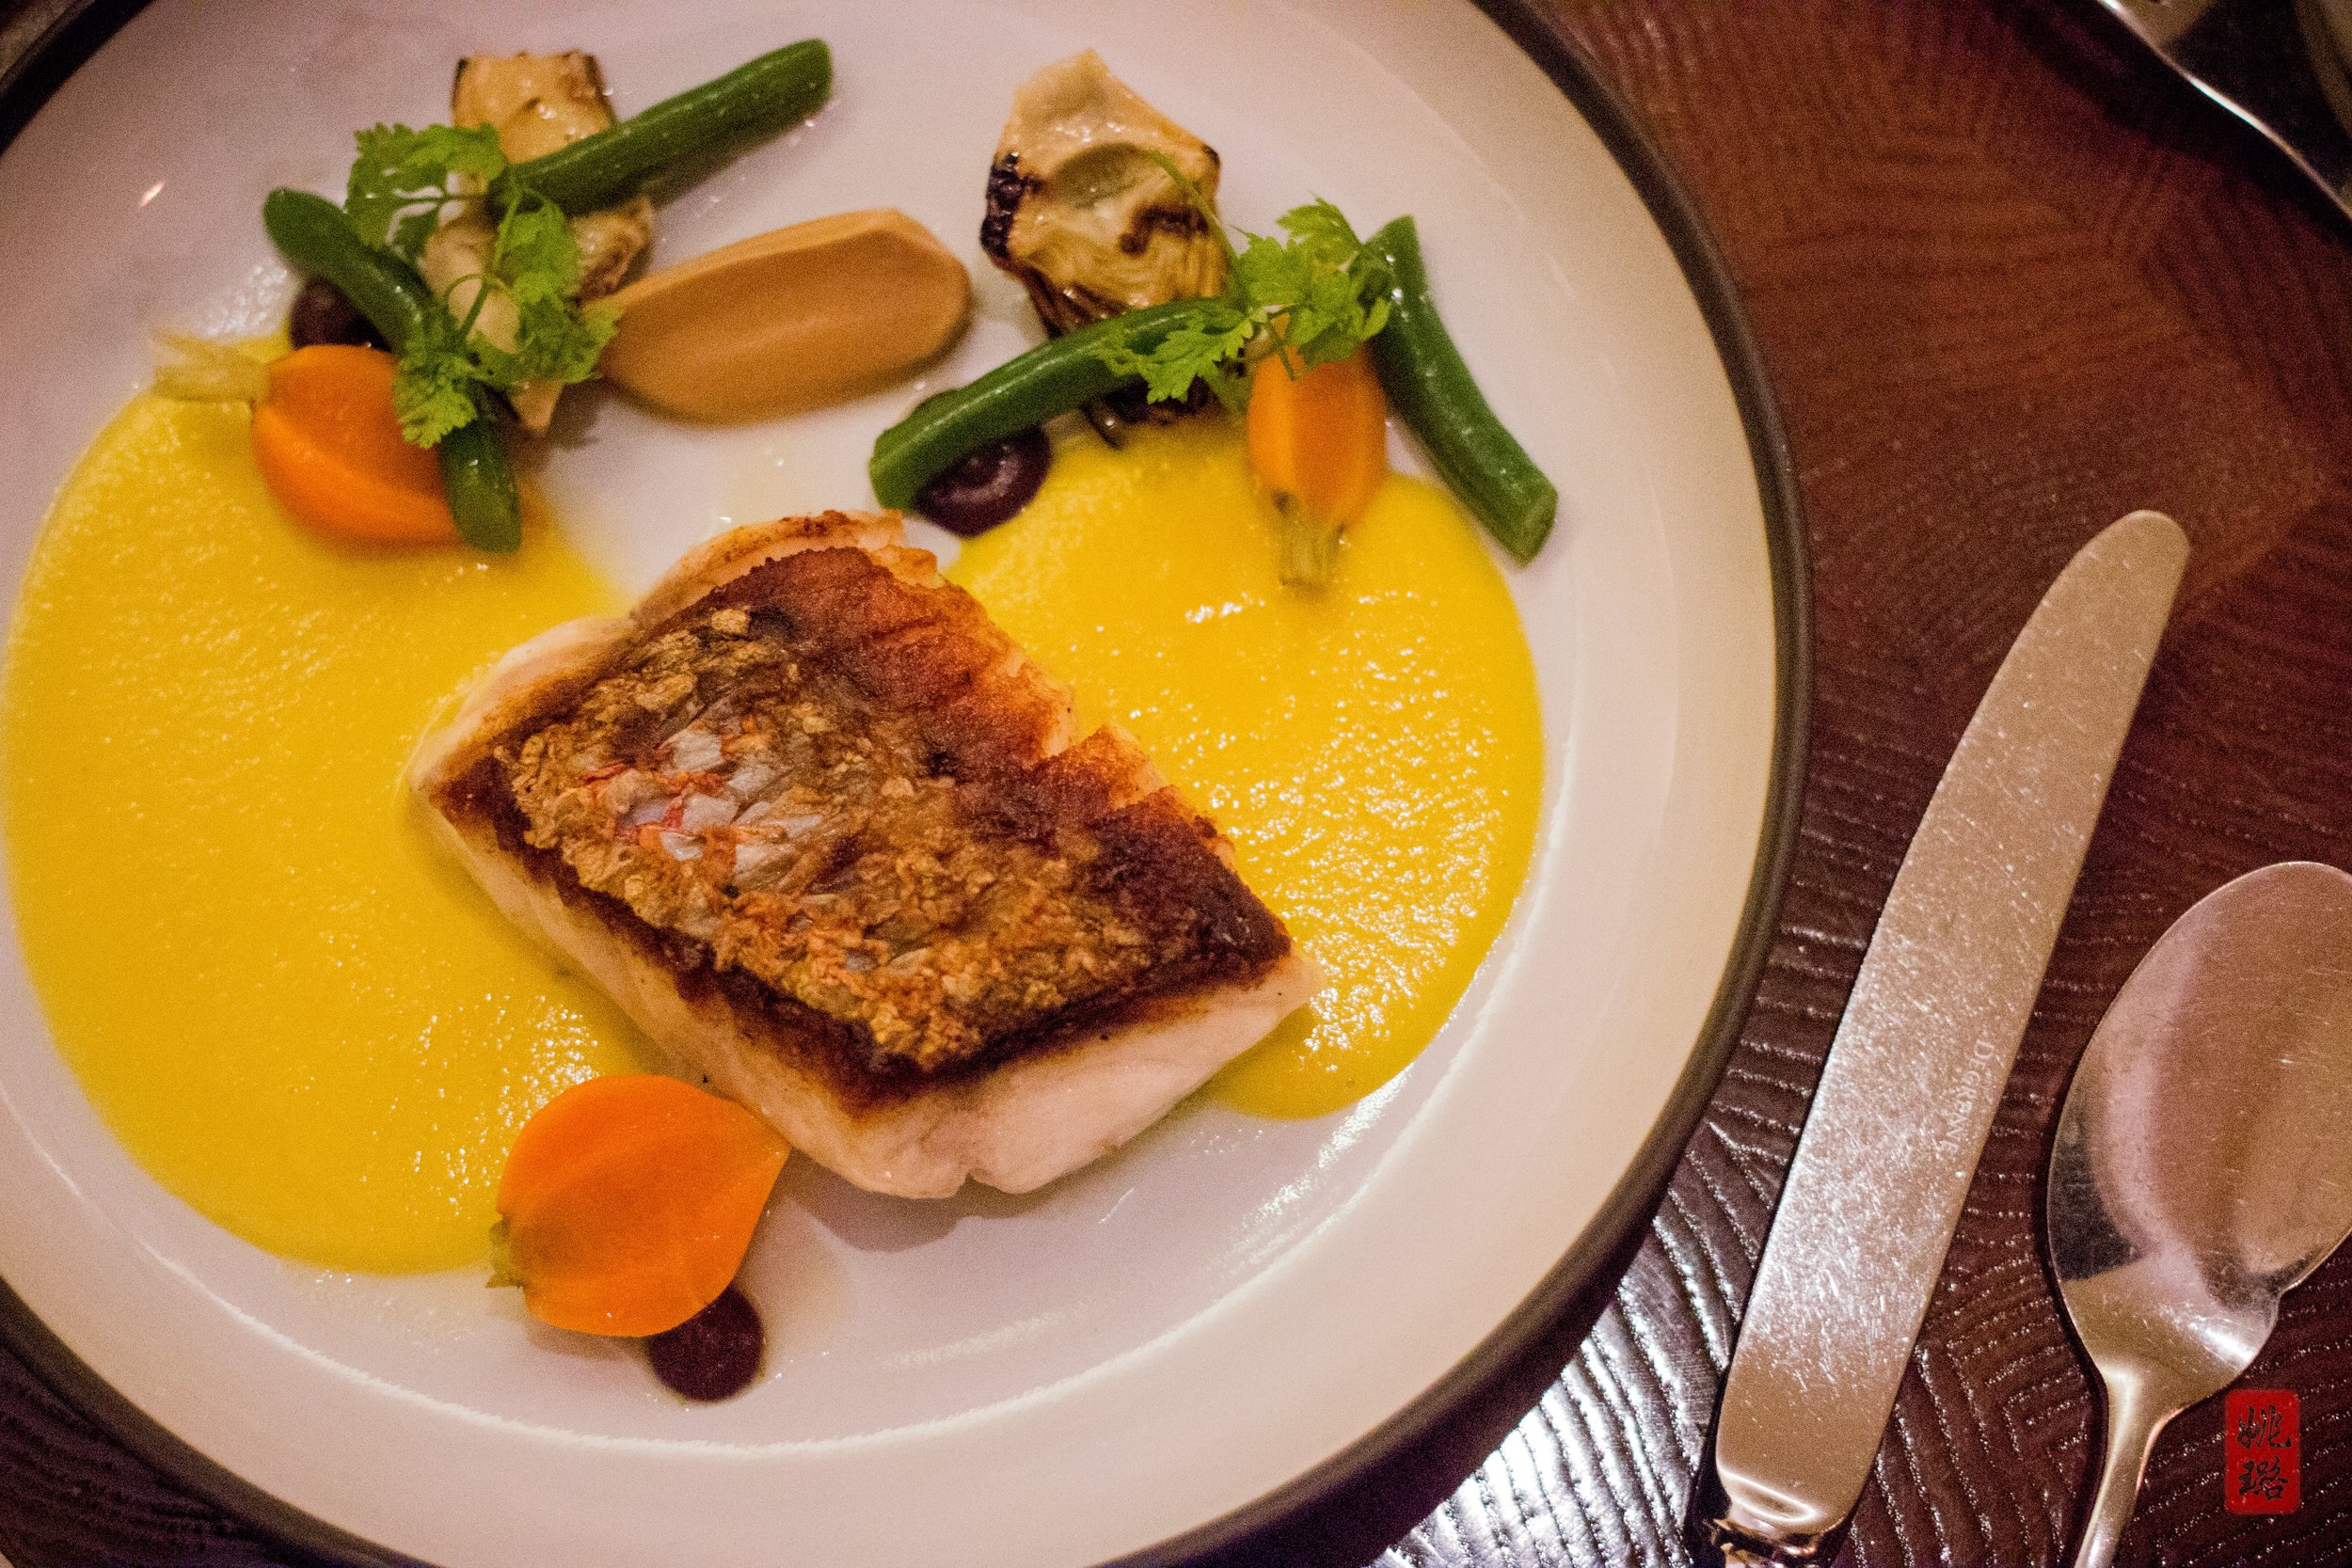 IMG_7551 Batard - Red snapper, sauce barigoule, thumbelina carrots, hericot verts, black olives.jpg